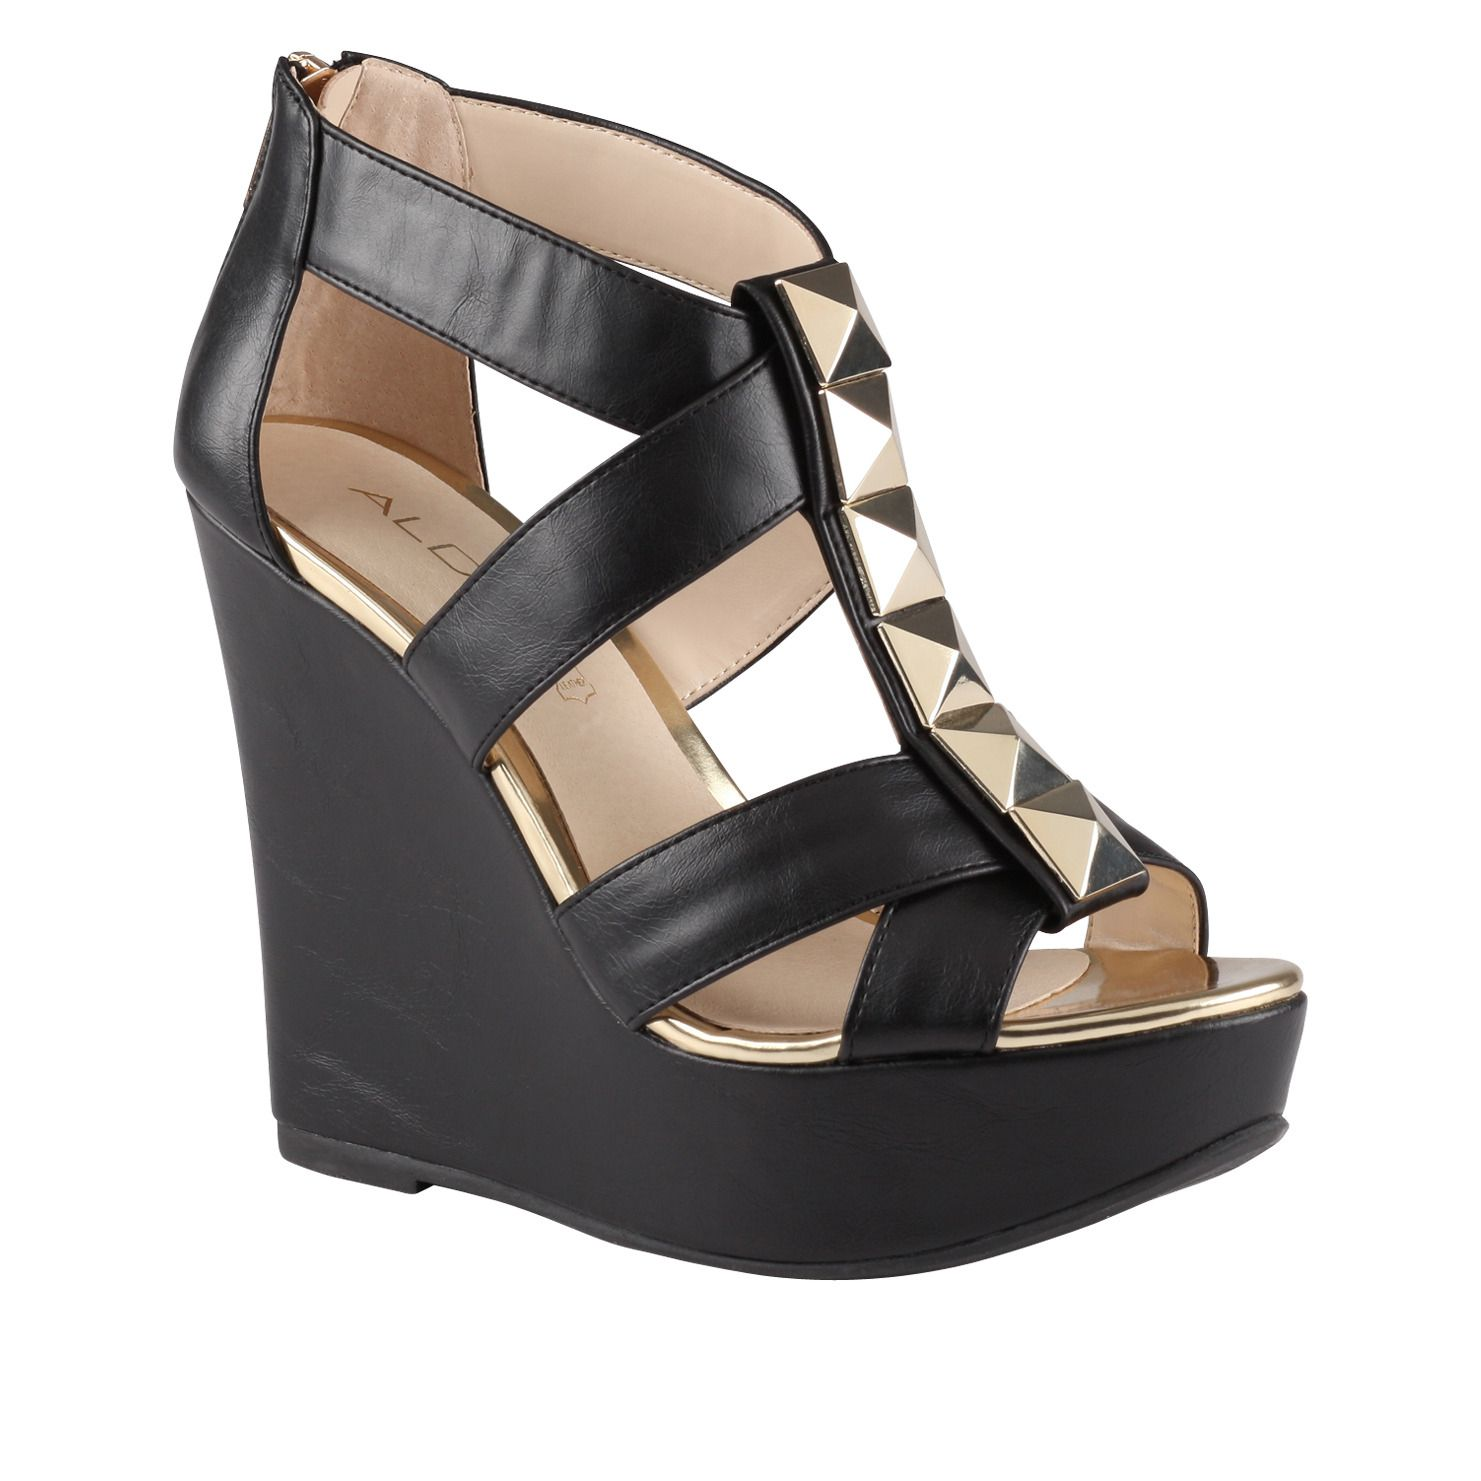 39fae93bf8b Aldo- black wedges with metal accents